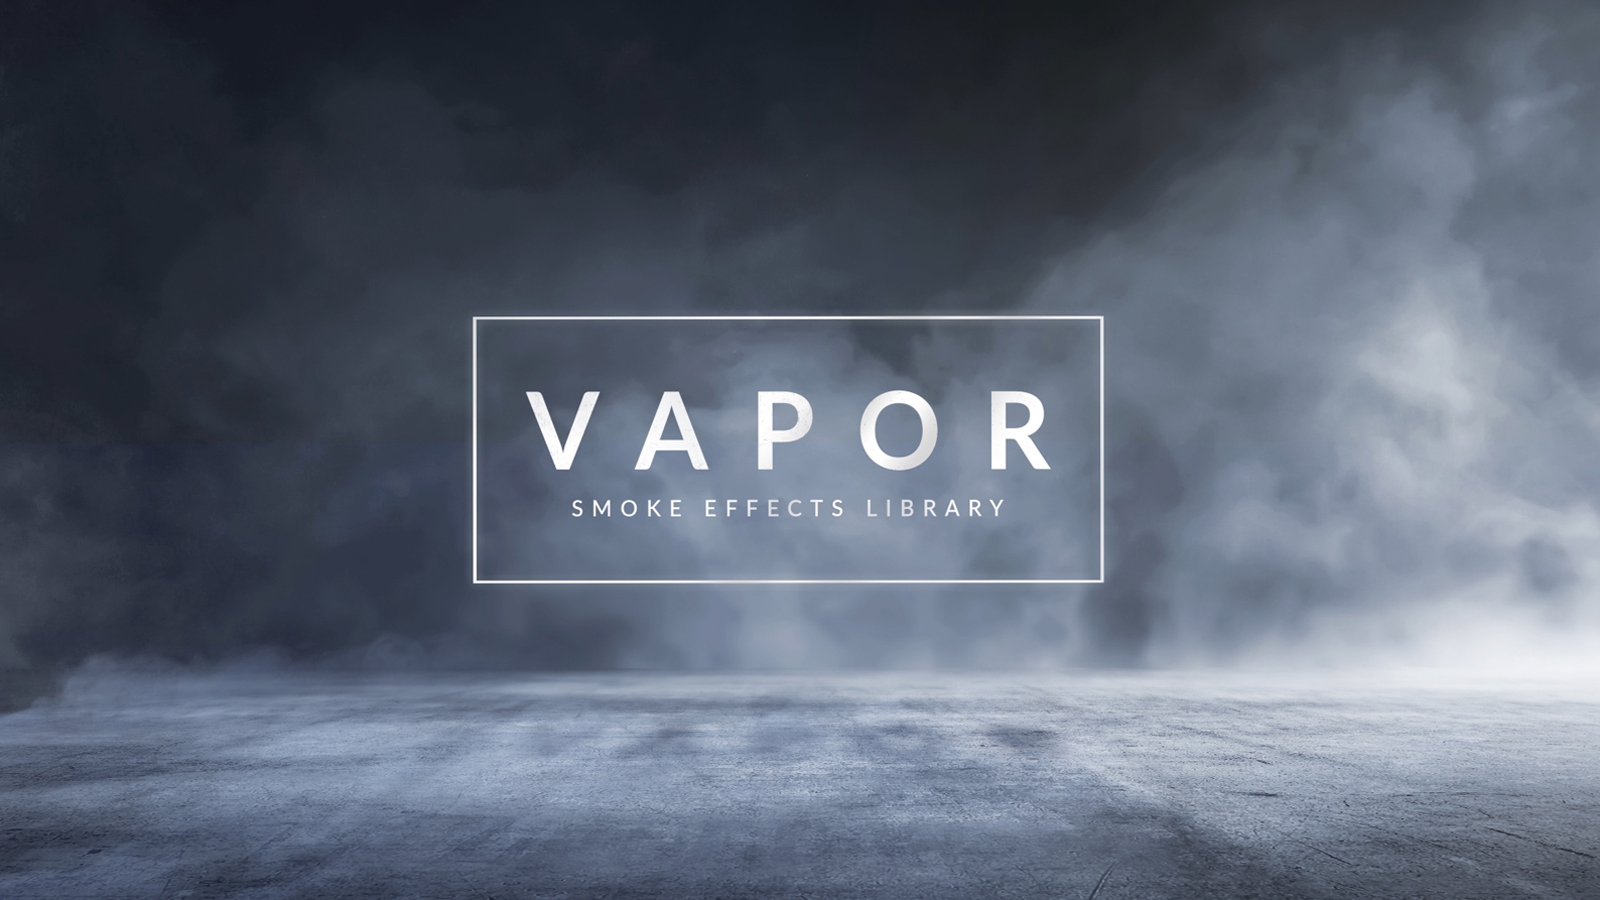 Vapor 100 smoke fog effects for video projects for After effects lyric video template